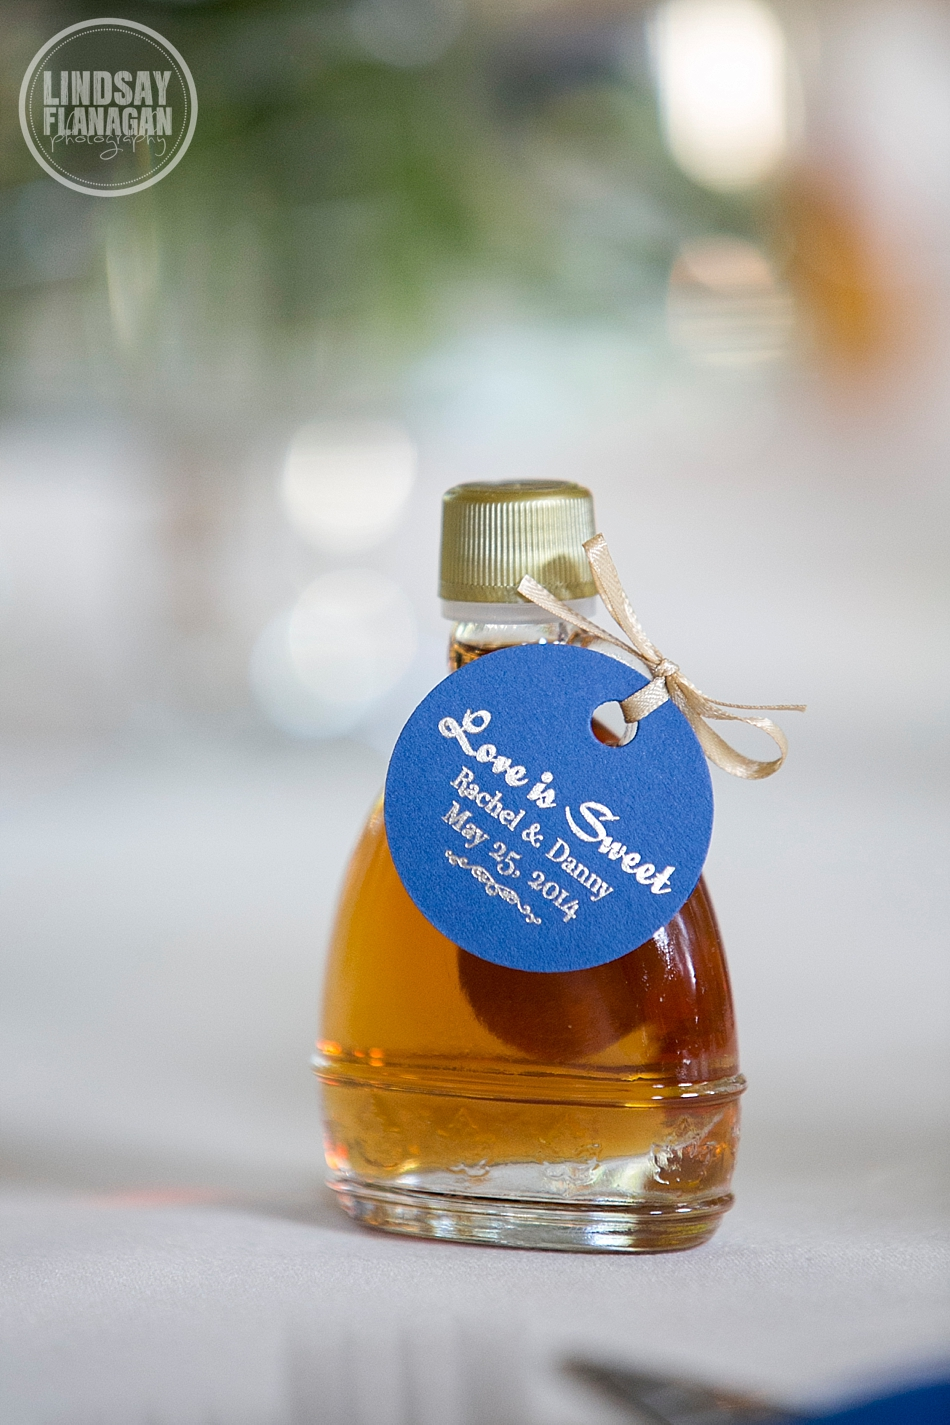 Rachel and Danny's Connecticut Jewish Wedding  at The Riverview | Syrup Favor by  Carman Brook Farms  | Favor Tags by  Admire Design